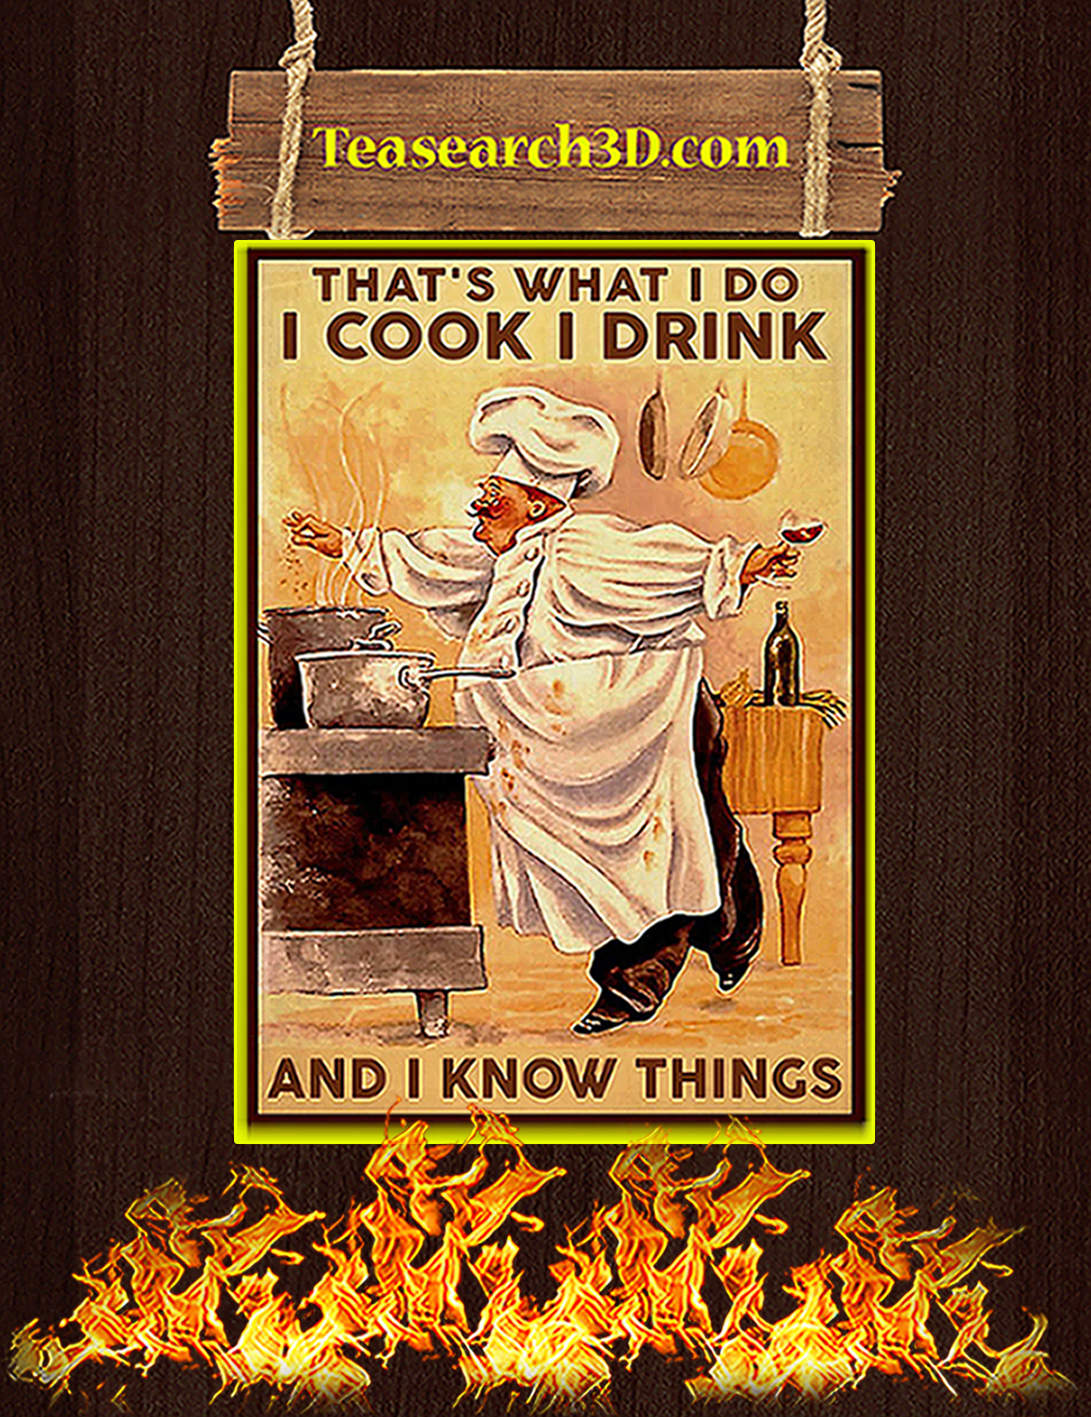 Chef cook that's what I do I cook I drink and I know things poster A2